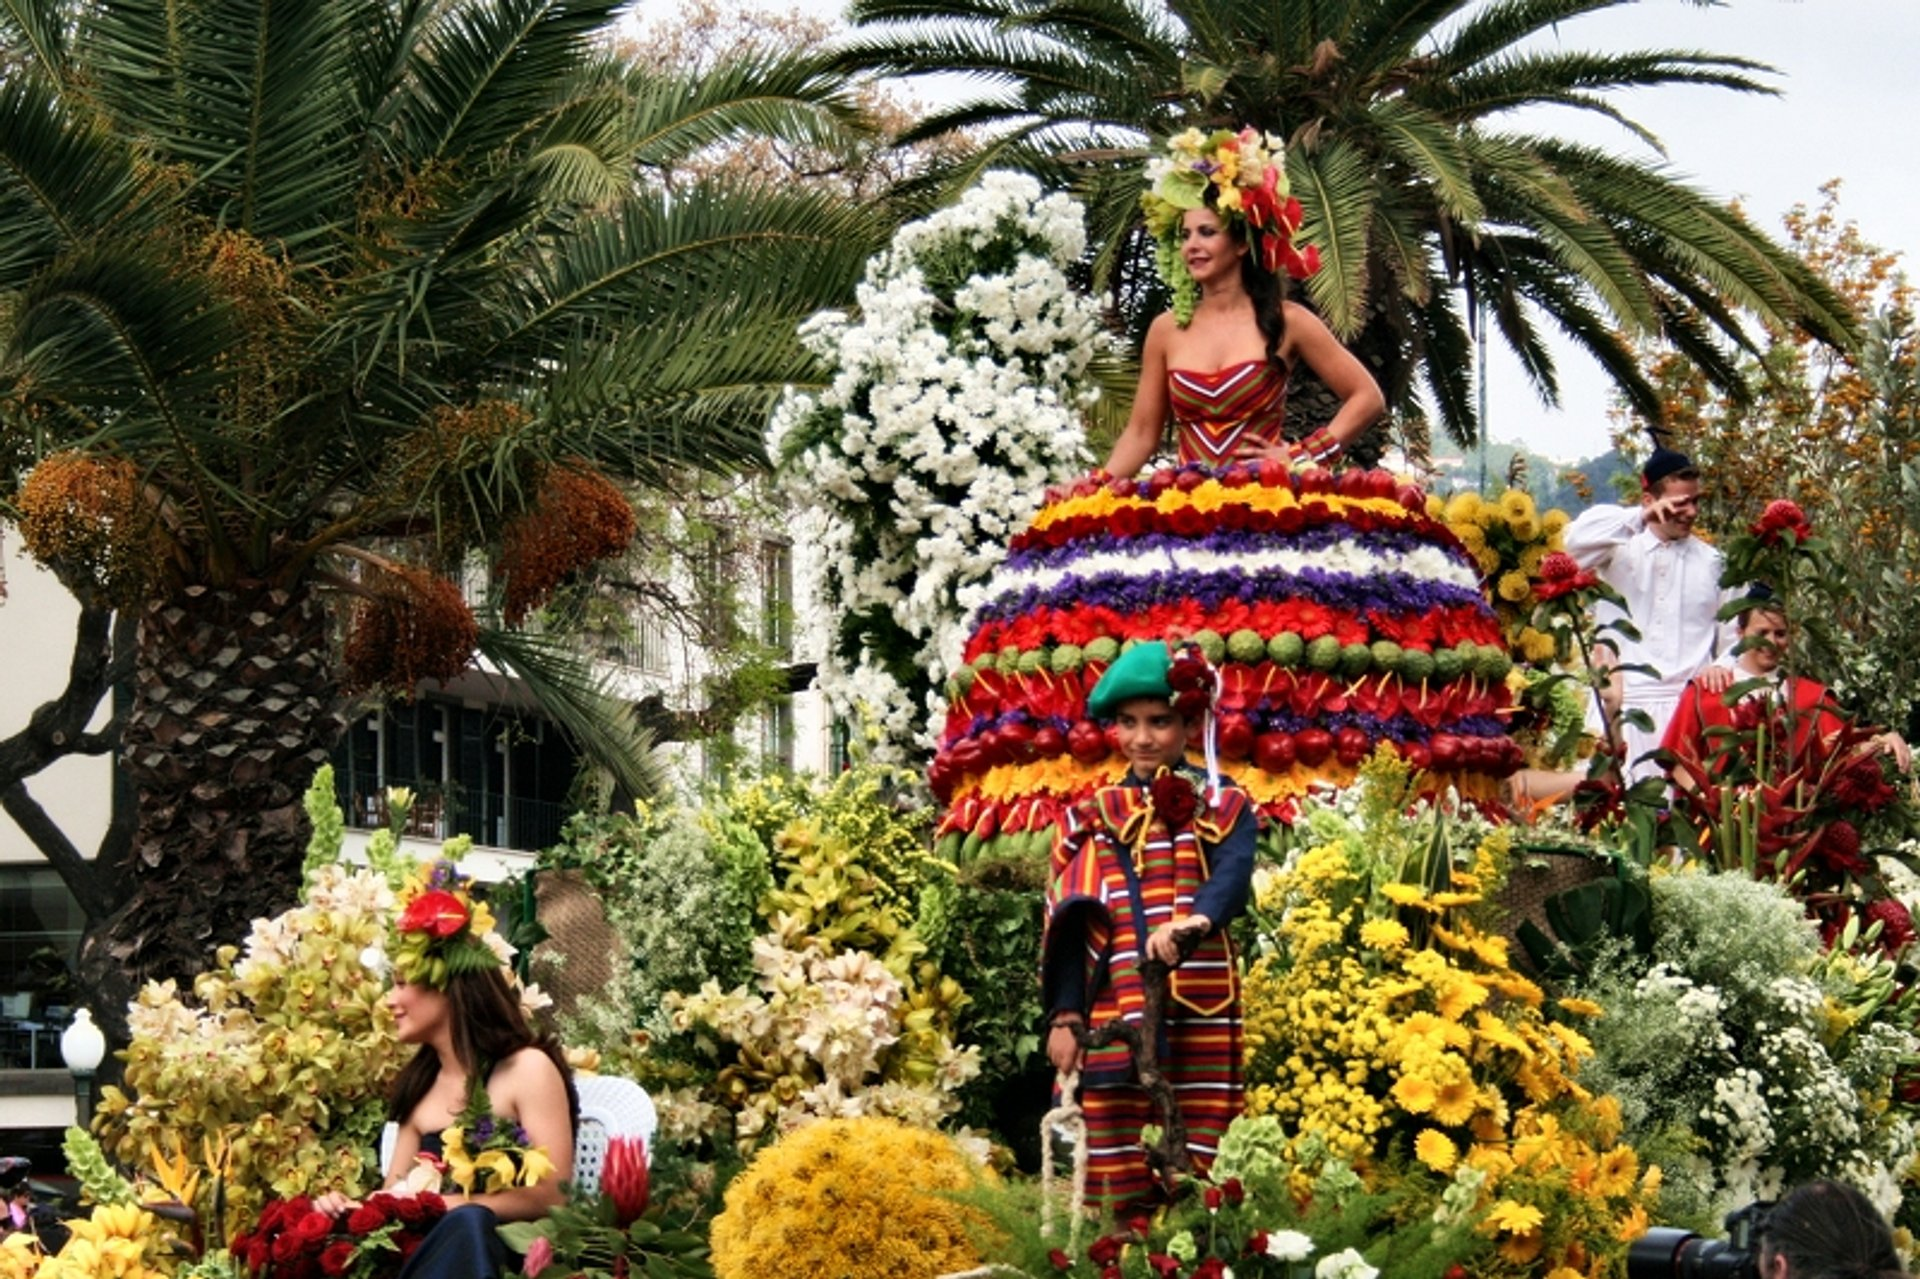 Madeira Flower Festival in Madeira 2019 - Best Time